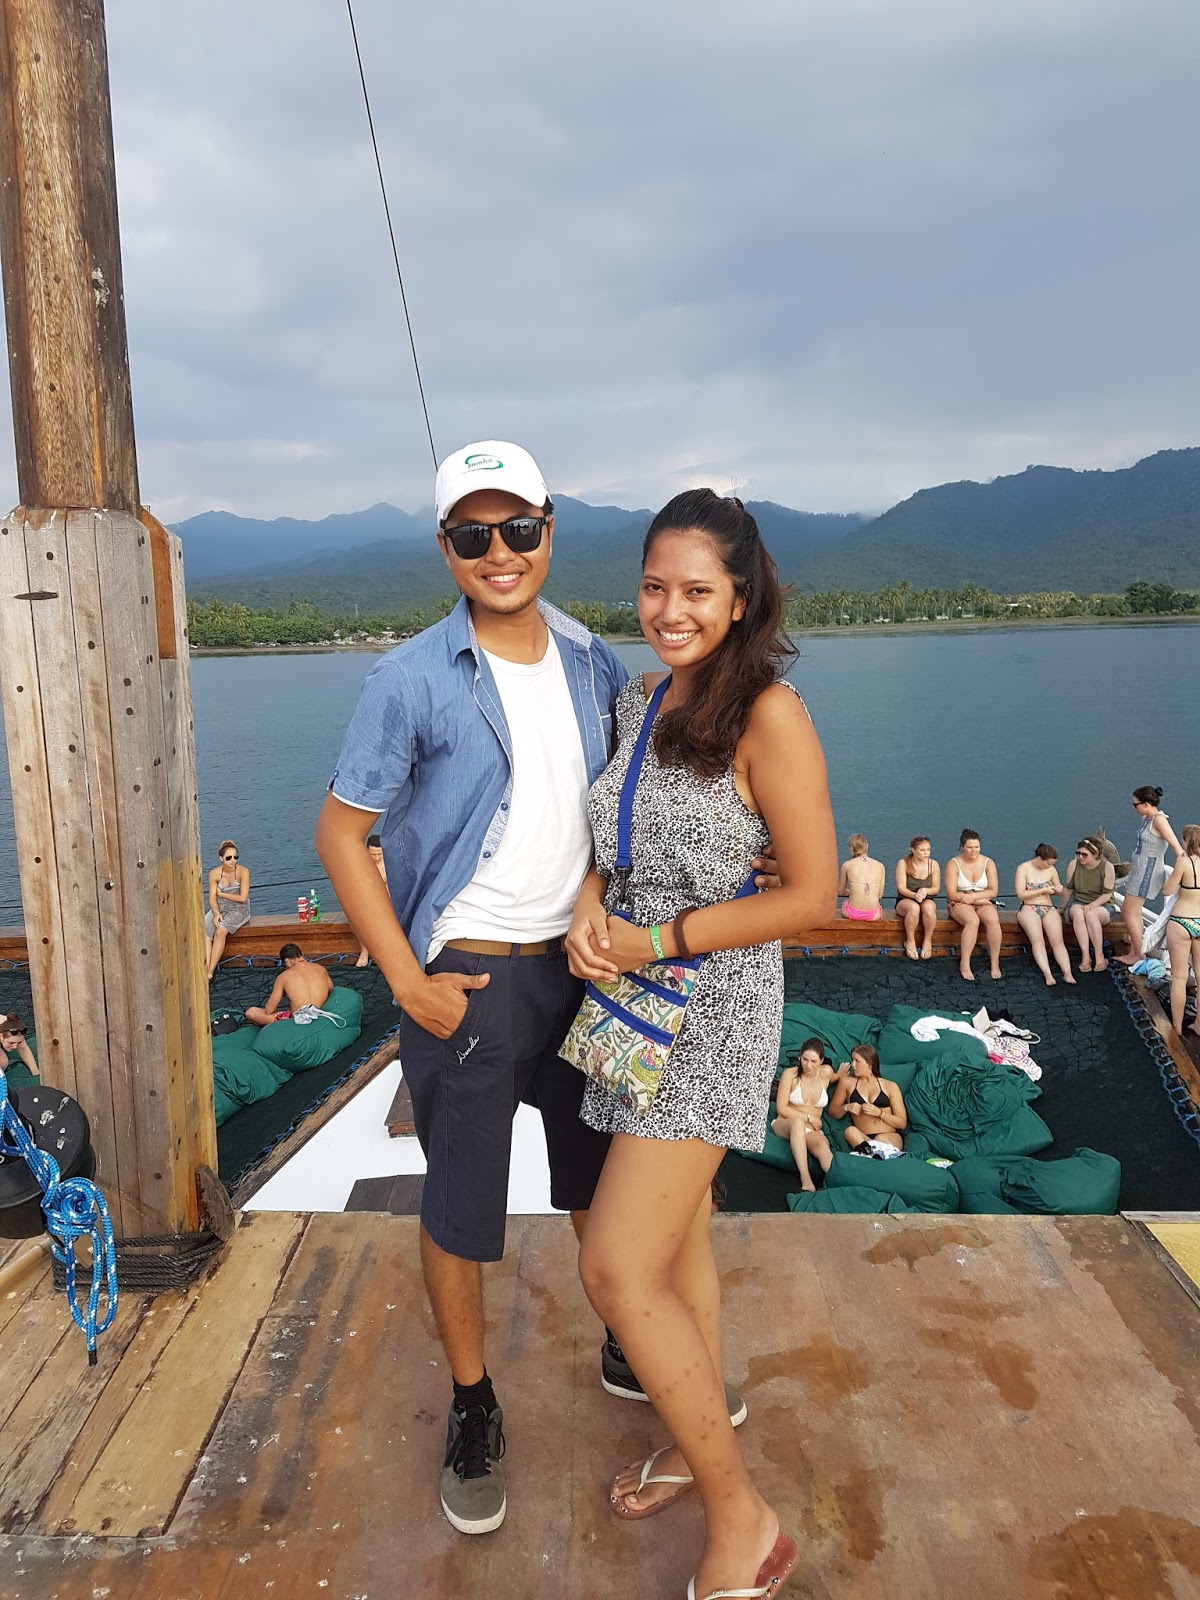 With the captain of the Jiggy Party Boat in Gili Trawangan